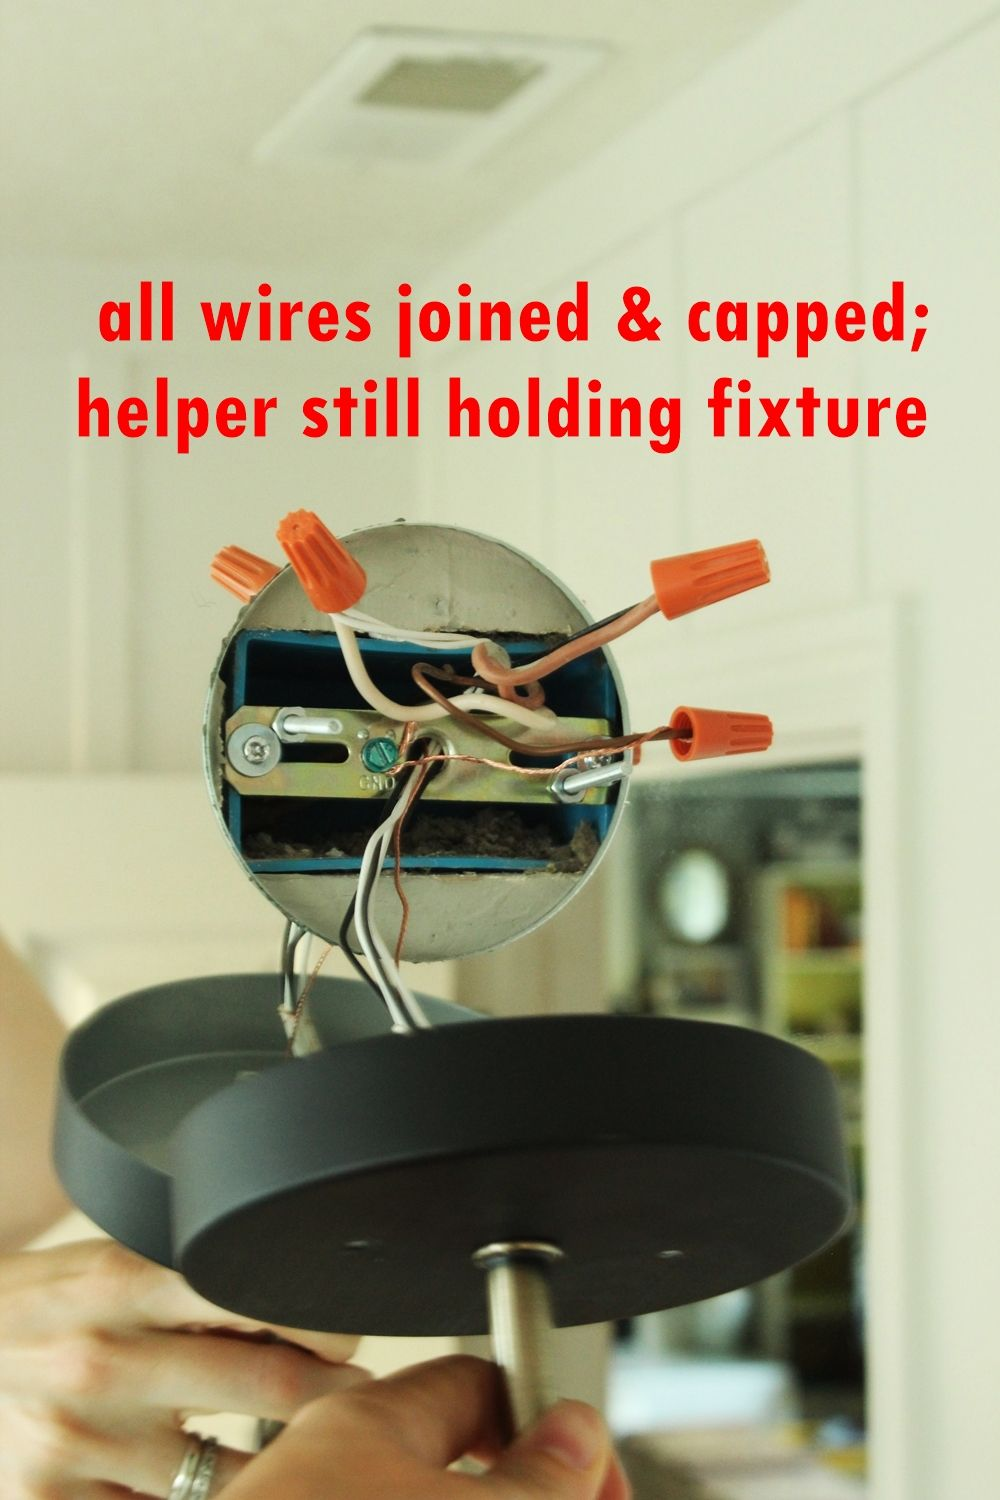 capped connection of all wires